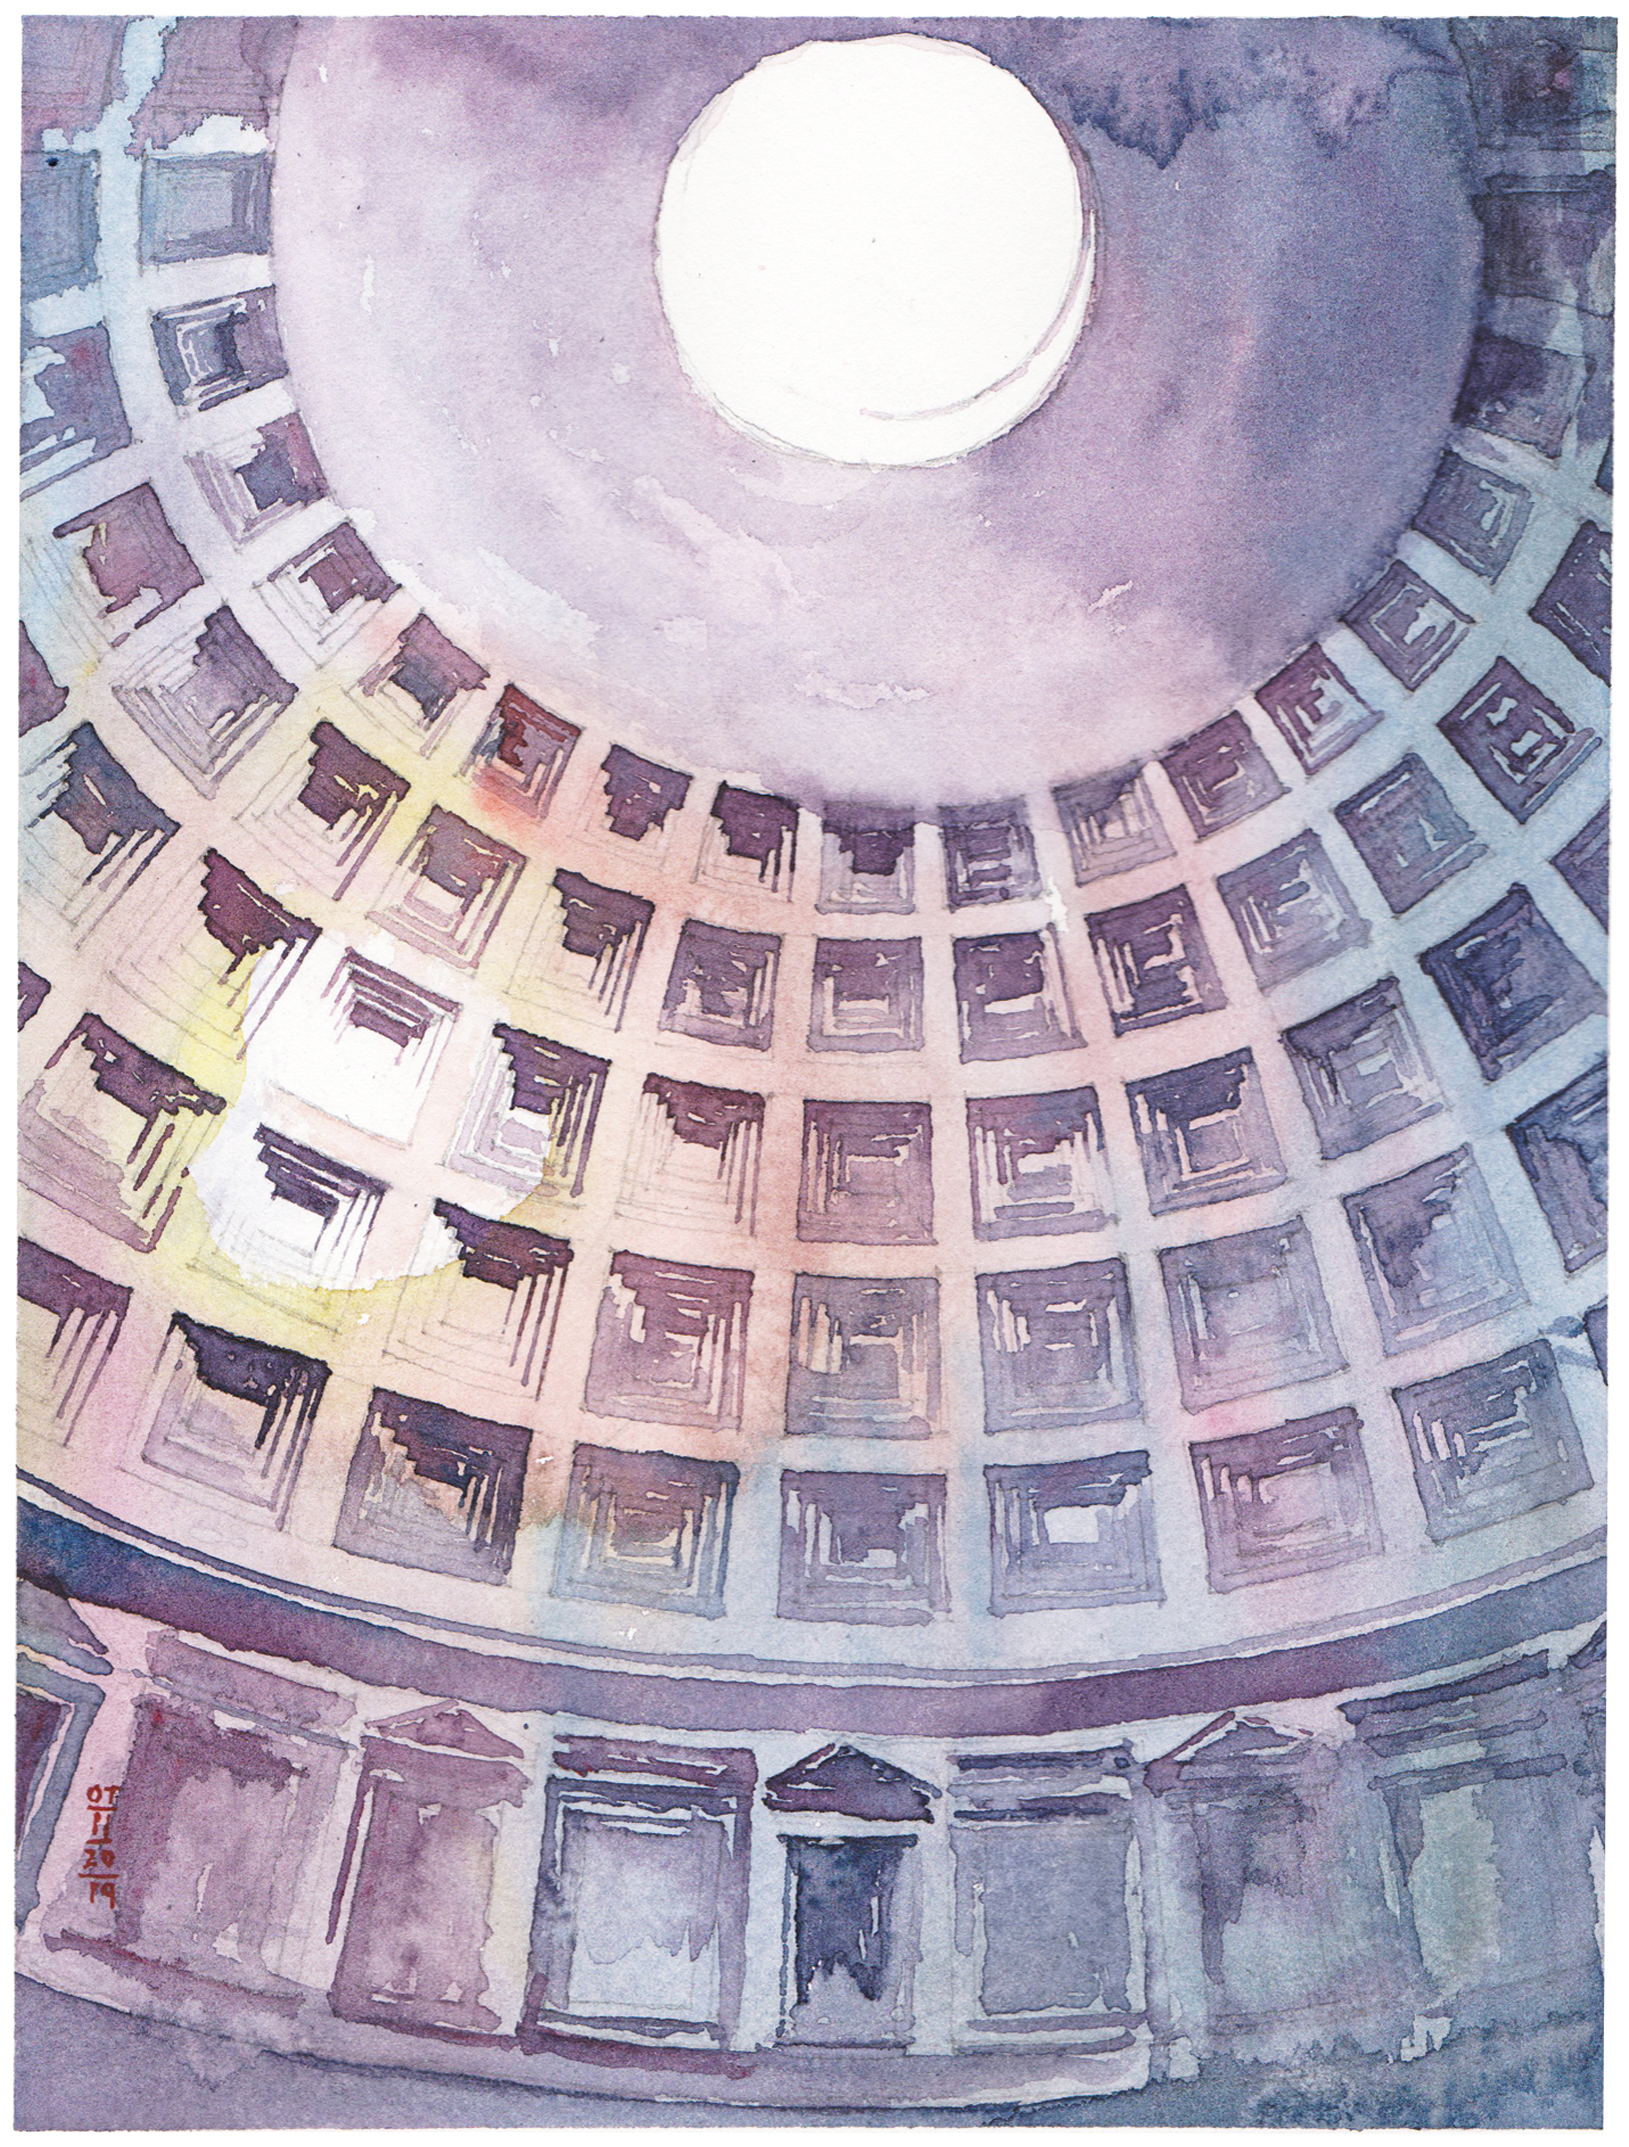 View of Pantheon Dome, Rome, Italy